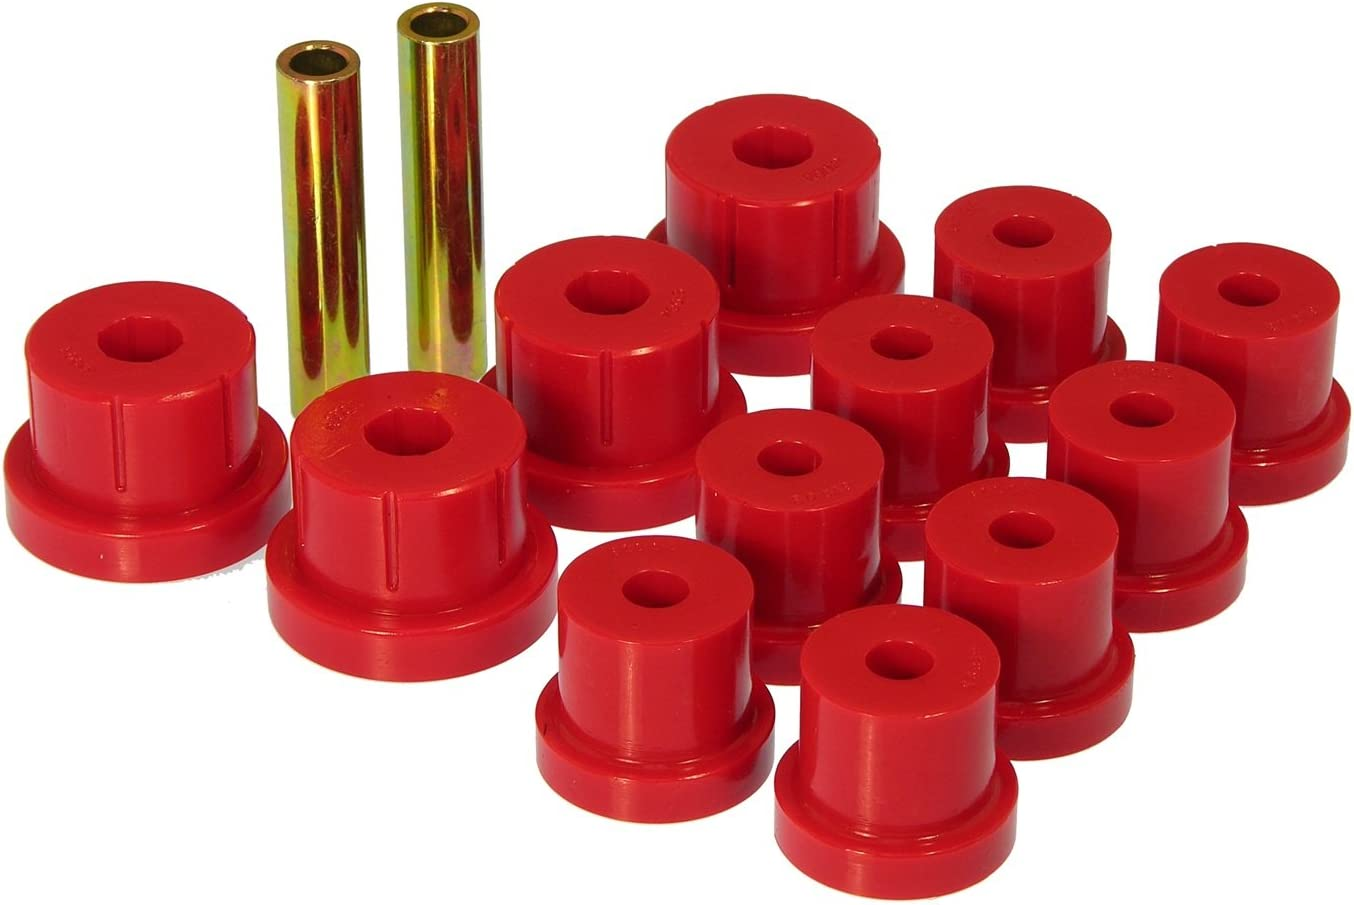 Regular store Prothane 7-1011 Red Rear Multi Leaf Spring Bushi and Cheap mail order sales Eye Shackle